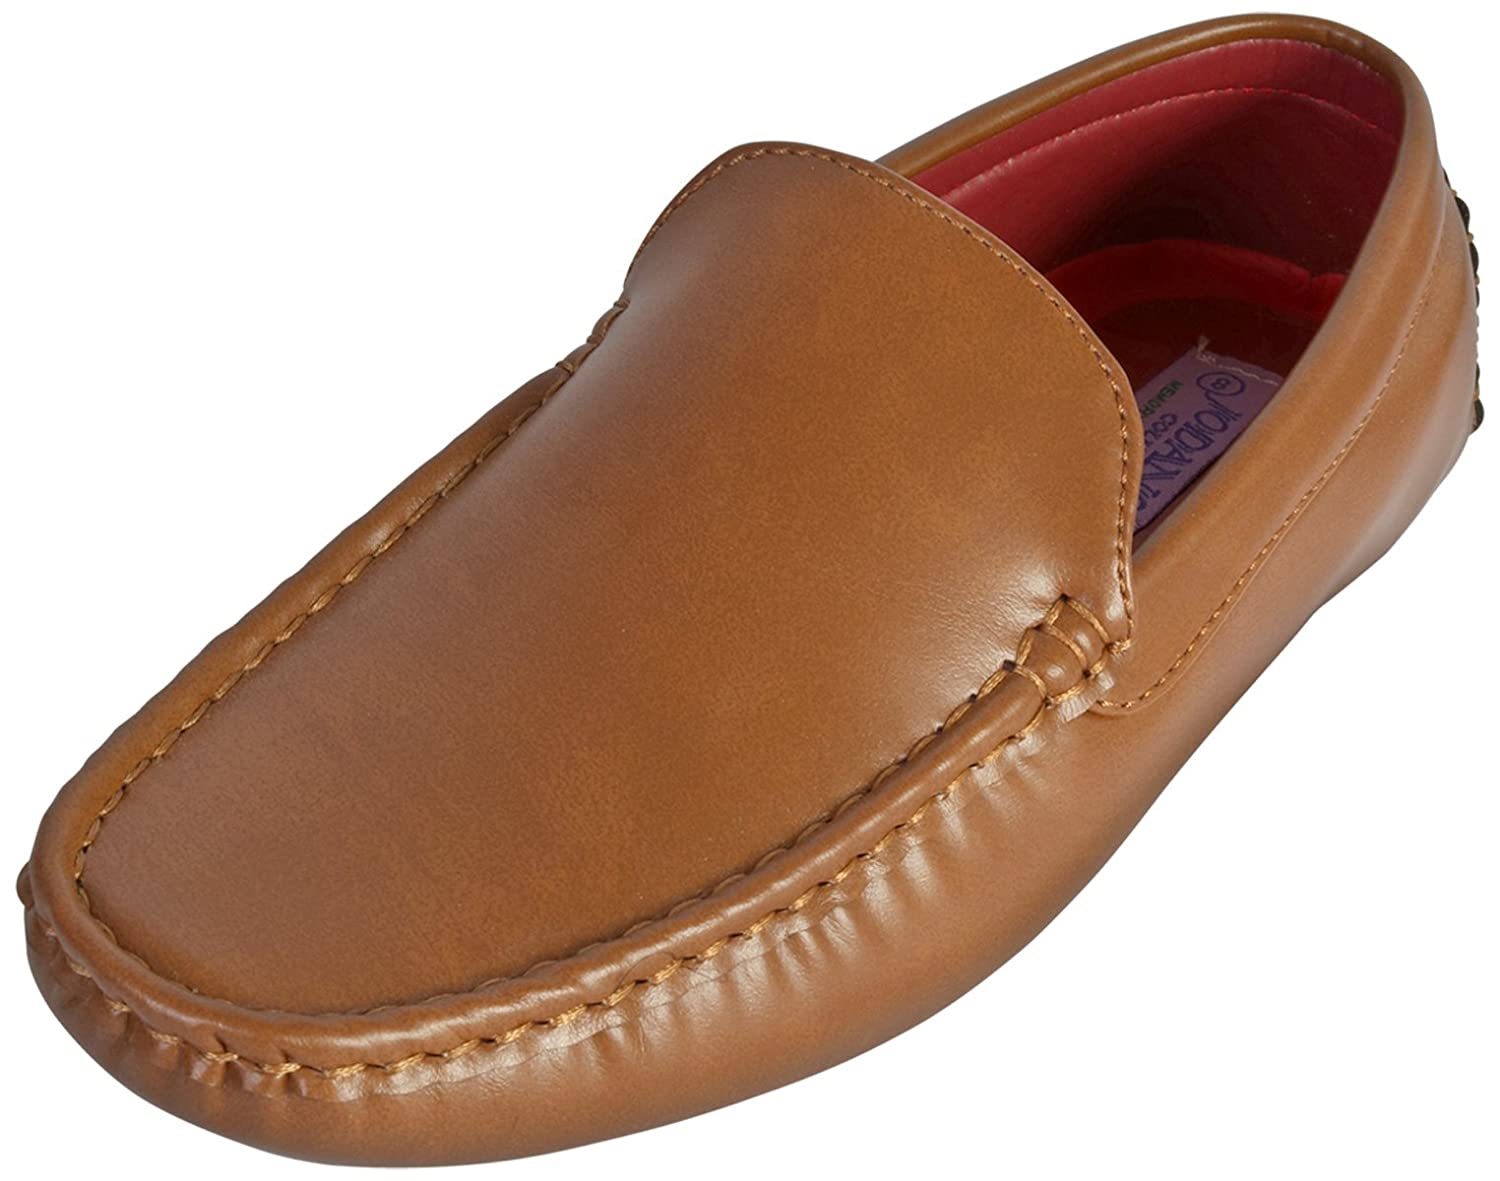 Jodano Collection Boys Classic Slip On Loafer Shoe (Toddler/Little Kid/Big Kid)